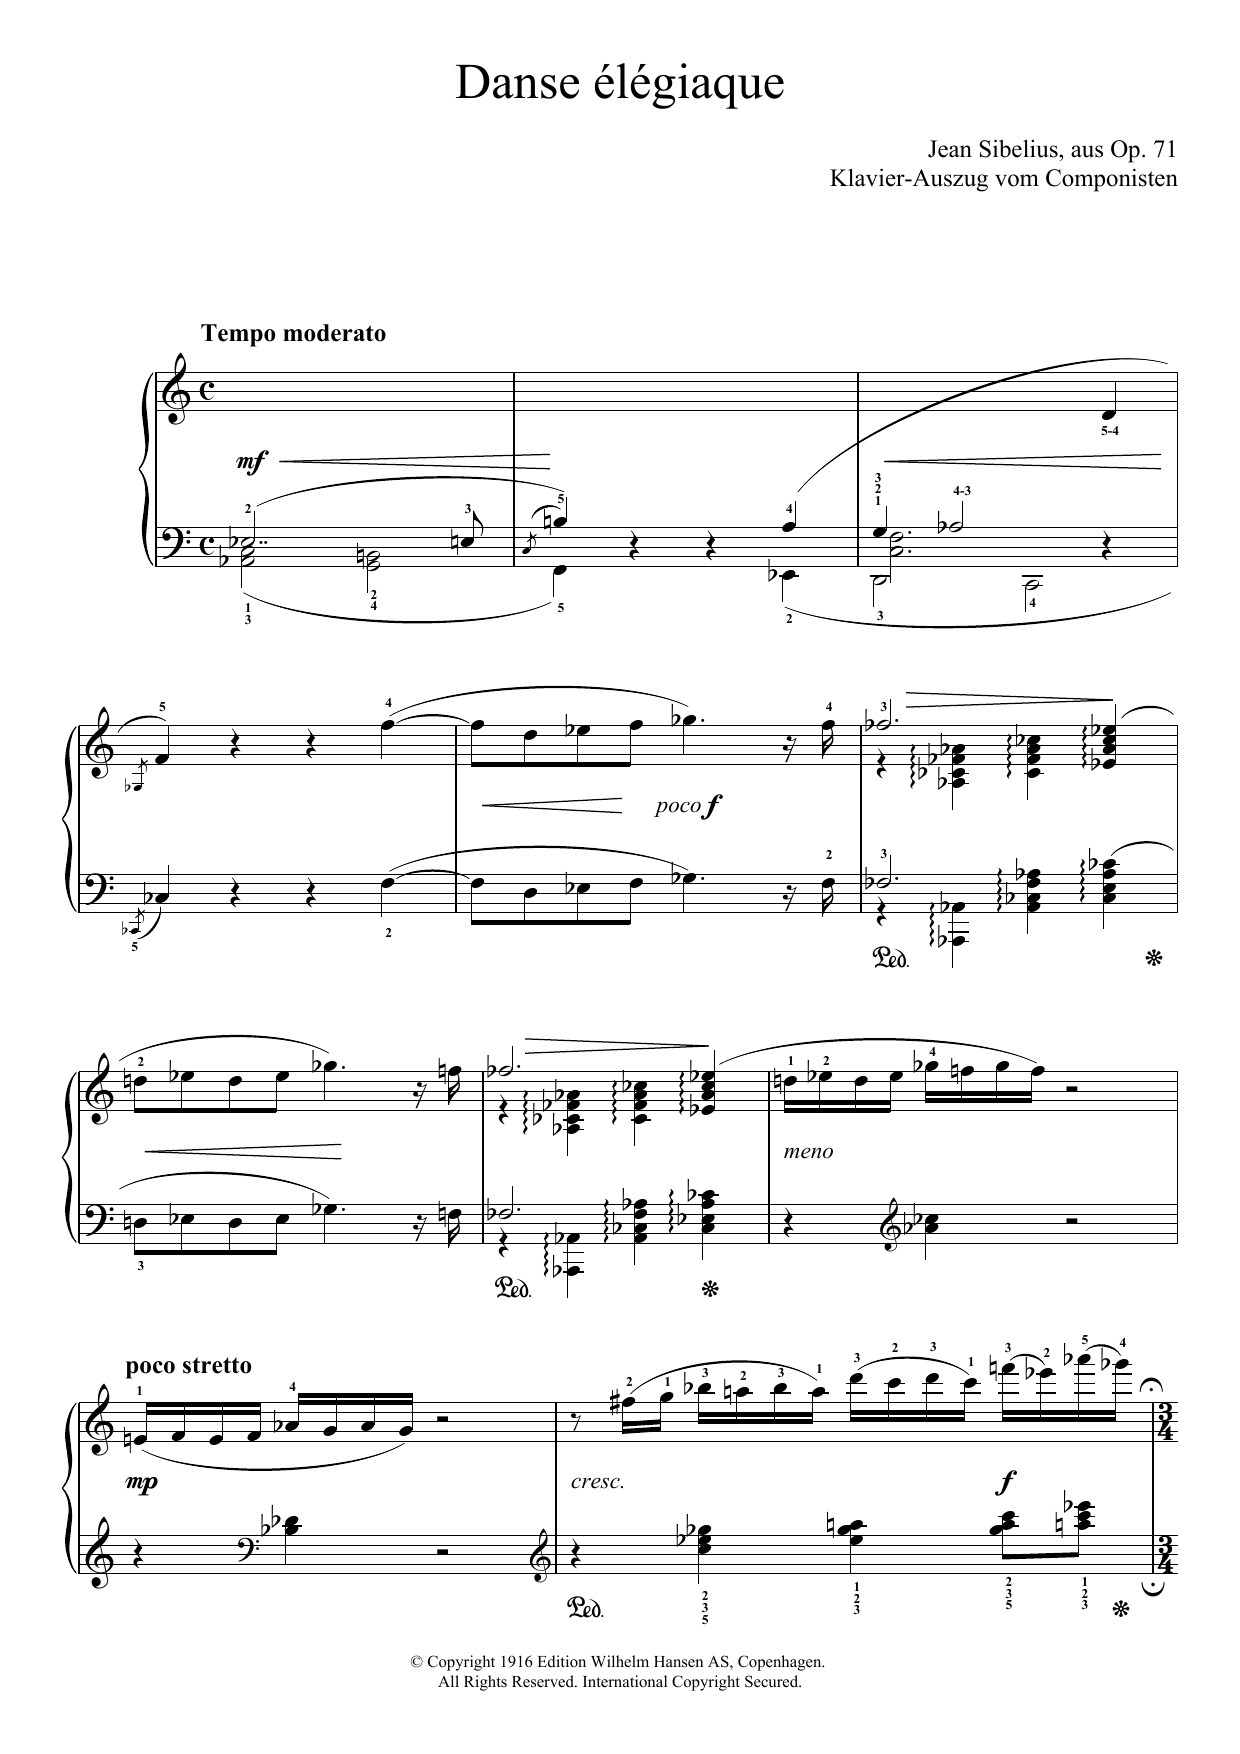 Danse Elegiaque (From Scaramouche, Op.71) Sheet Music